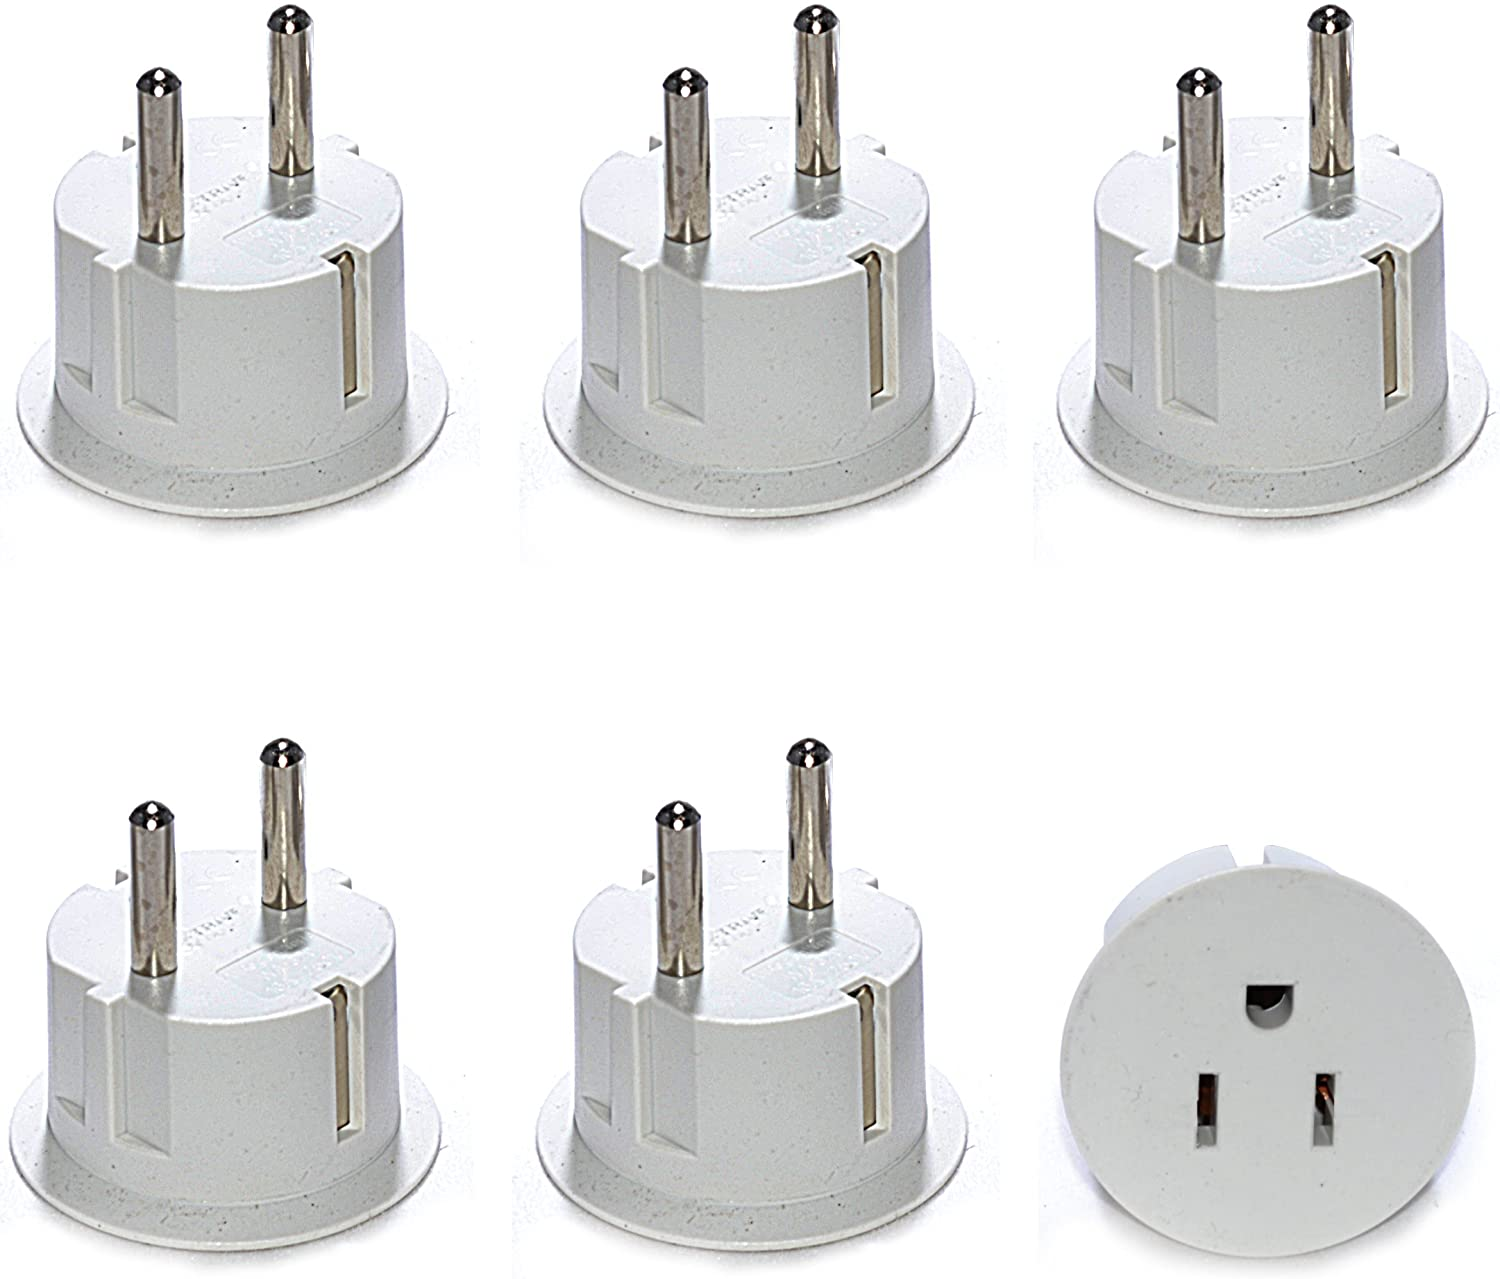 Amazon.com: Orei American USA to European Schuko Germany Plug Adapters CE  Certified Heavy Duty - 6 Pack - Perfect for Travelling with Cell Phones,  Laptops, Cameras & More: Home Audio & Theater